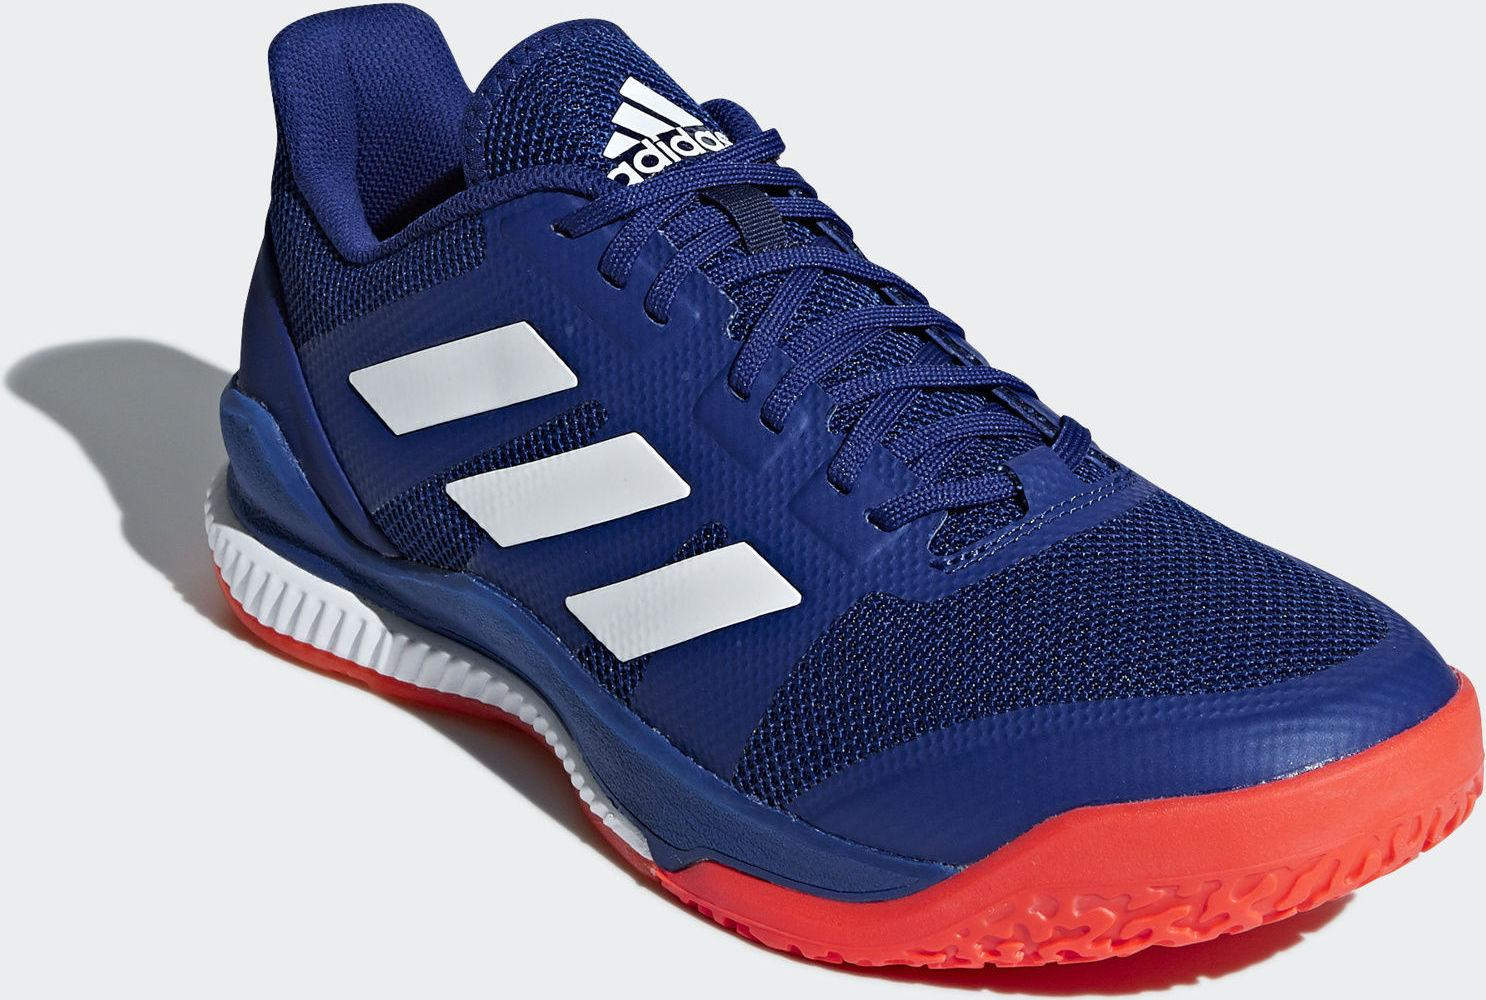 043ecbb83 Adidas Stabil Bounce Court Shoes - Blue - Just Rackets